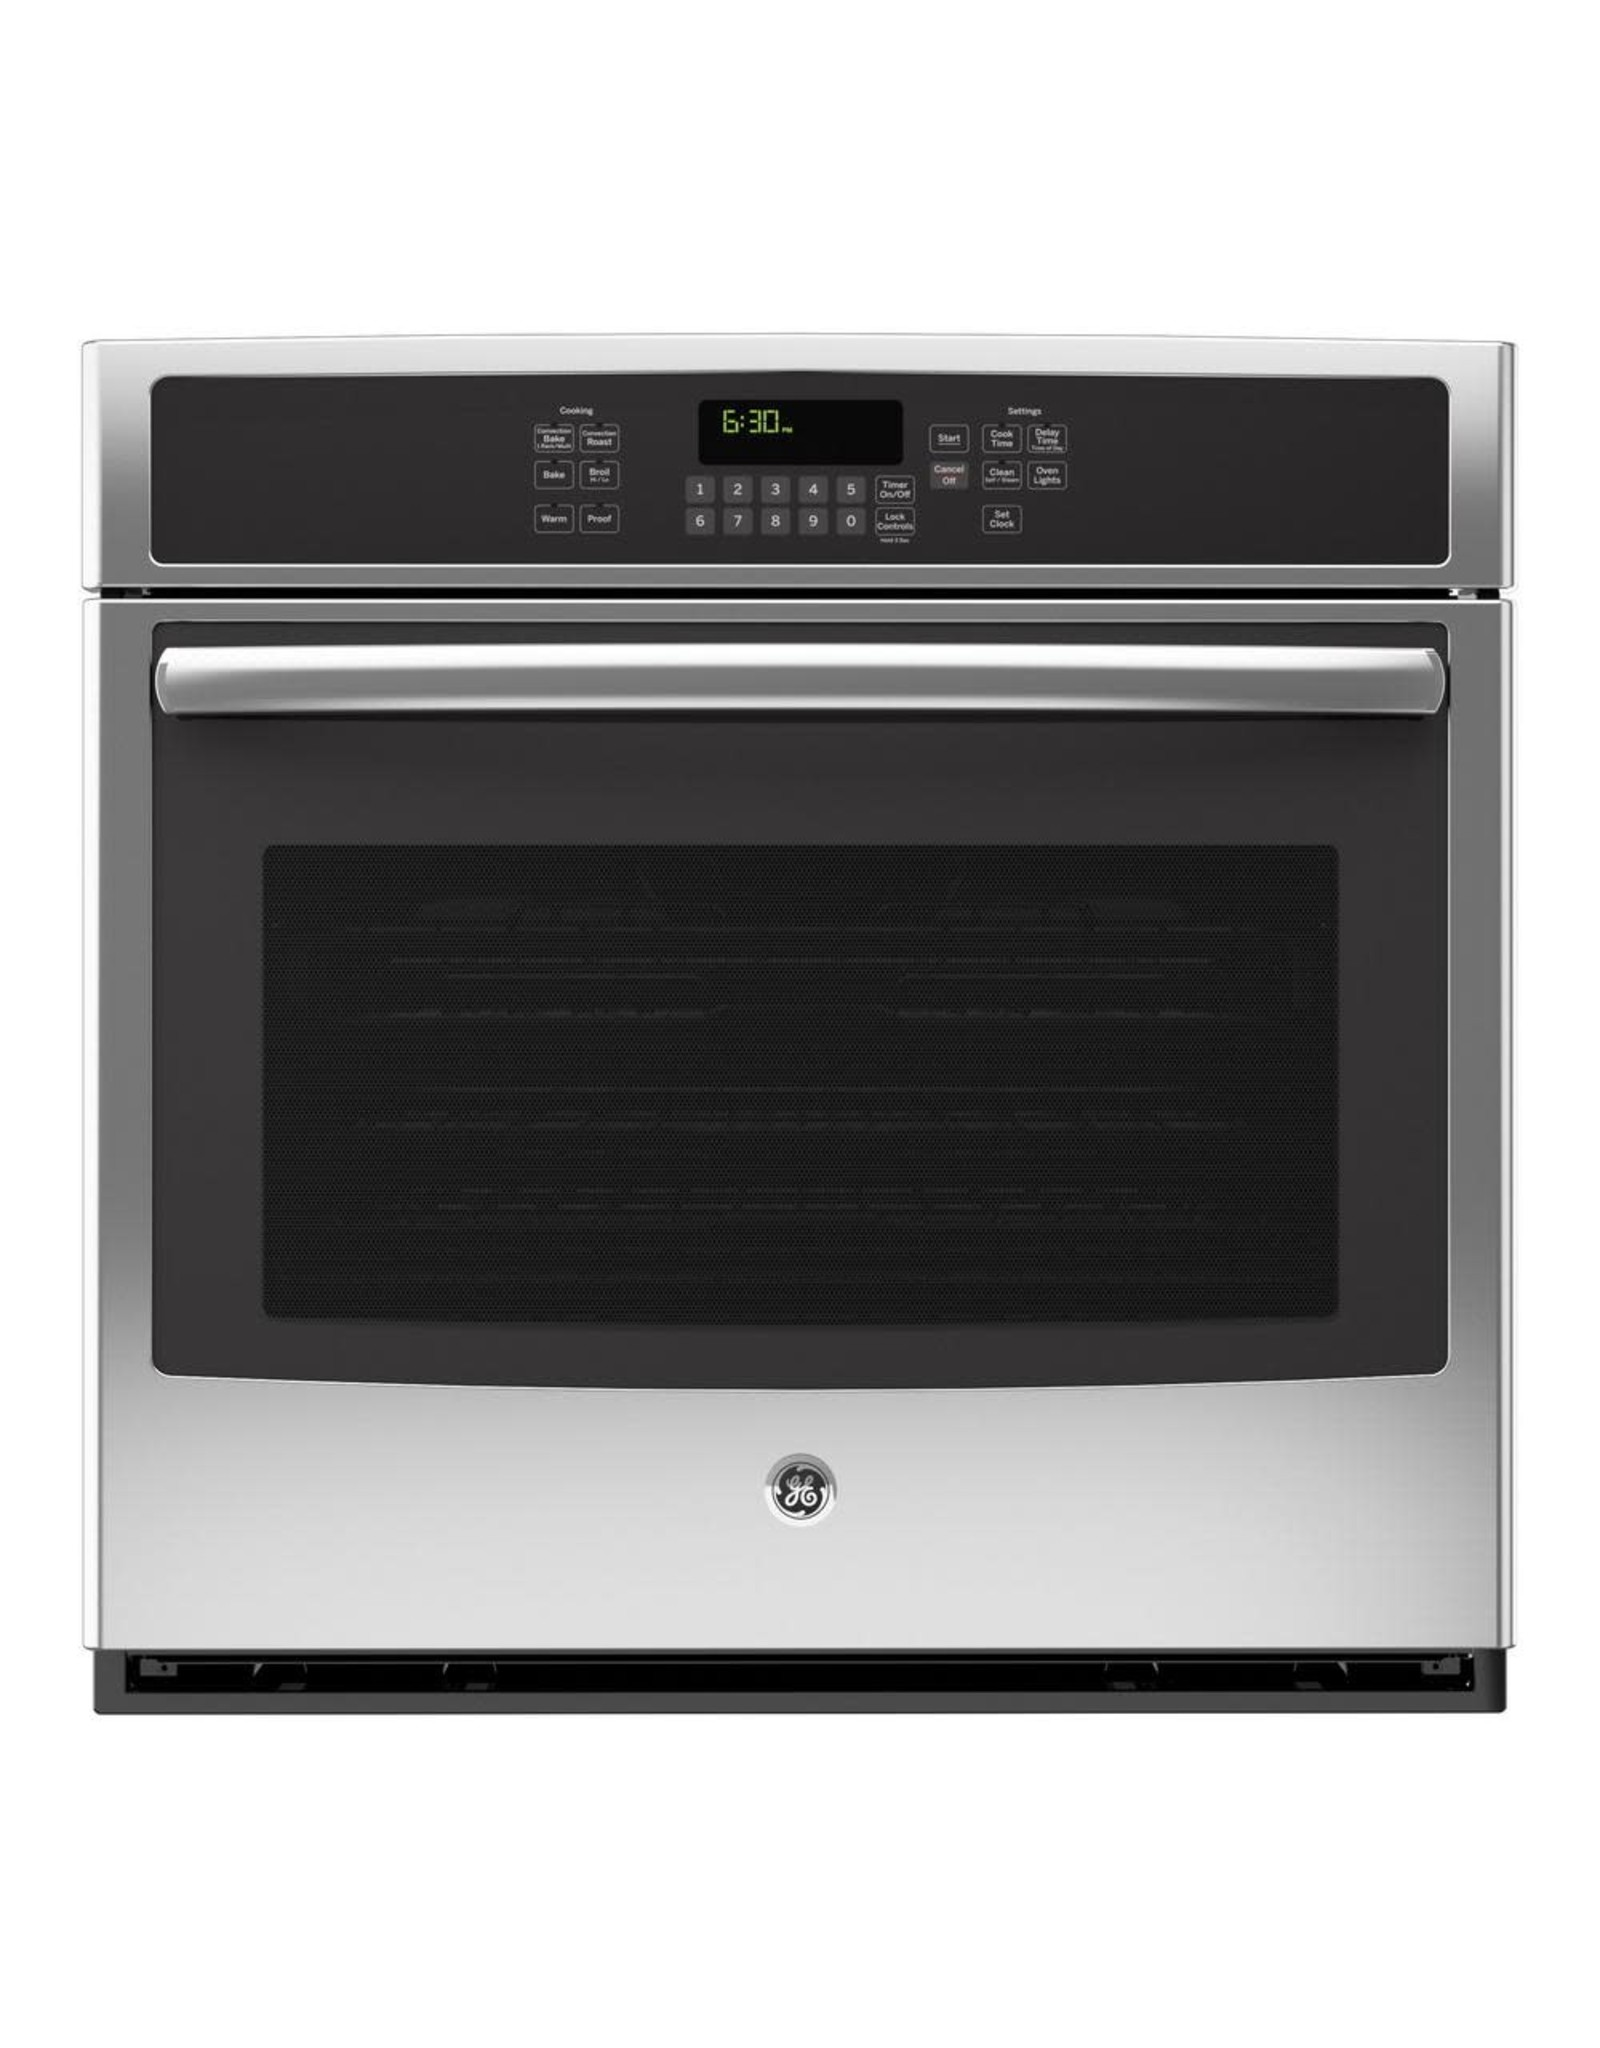 GE JT5000SFSS 30 in. 5.0 cu. ft. Single Electric Wall Oven Self-Cleaning with Steam in Stainless Steel